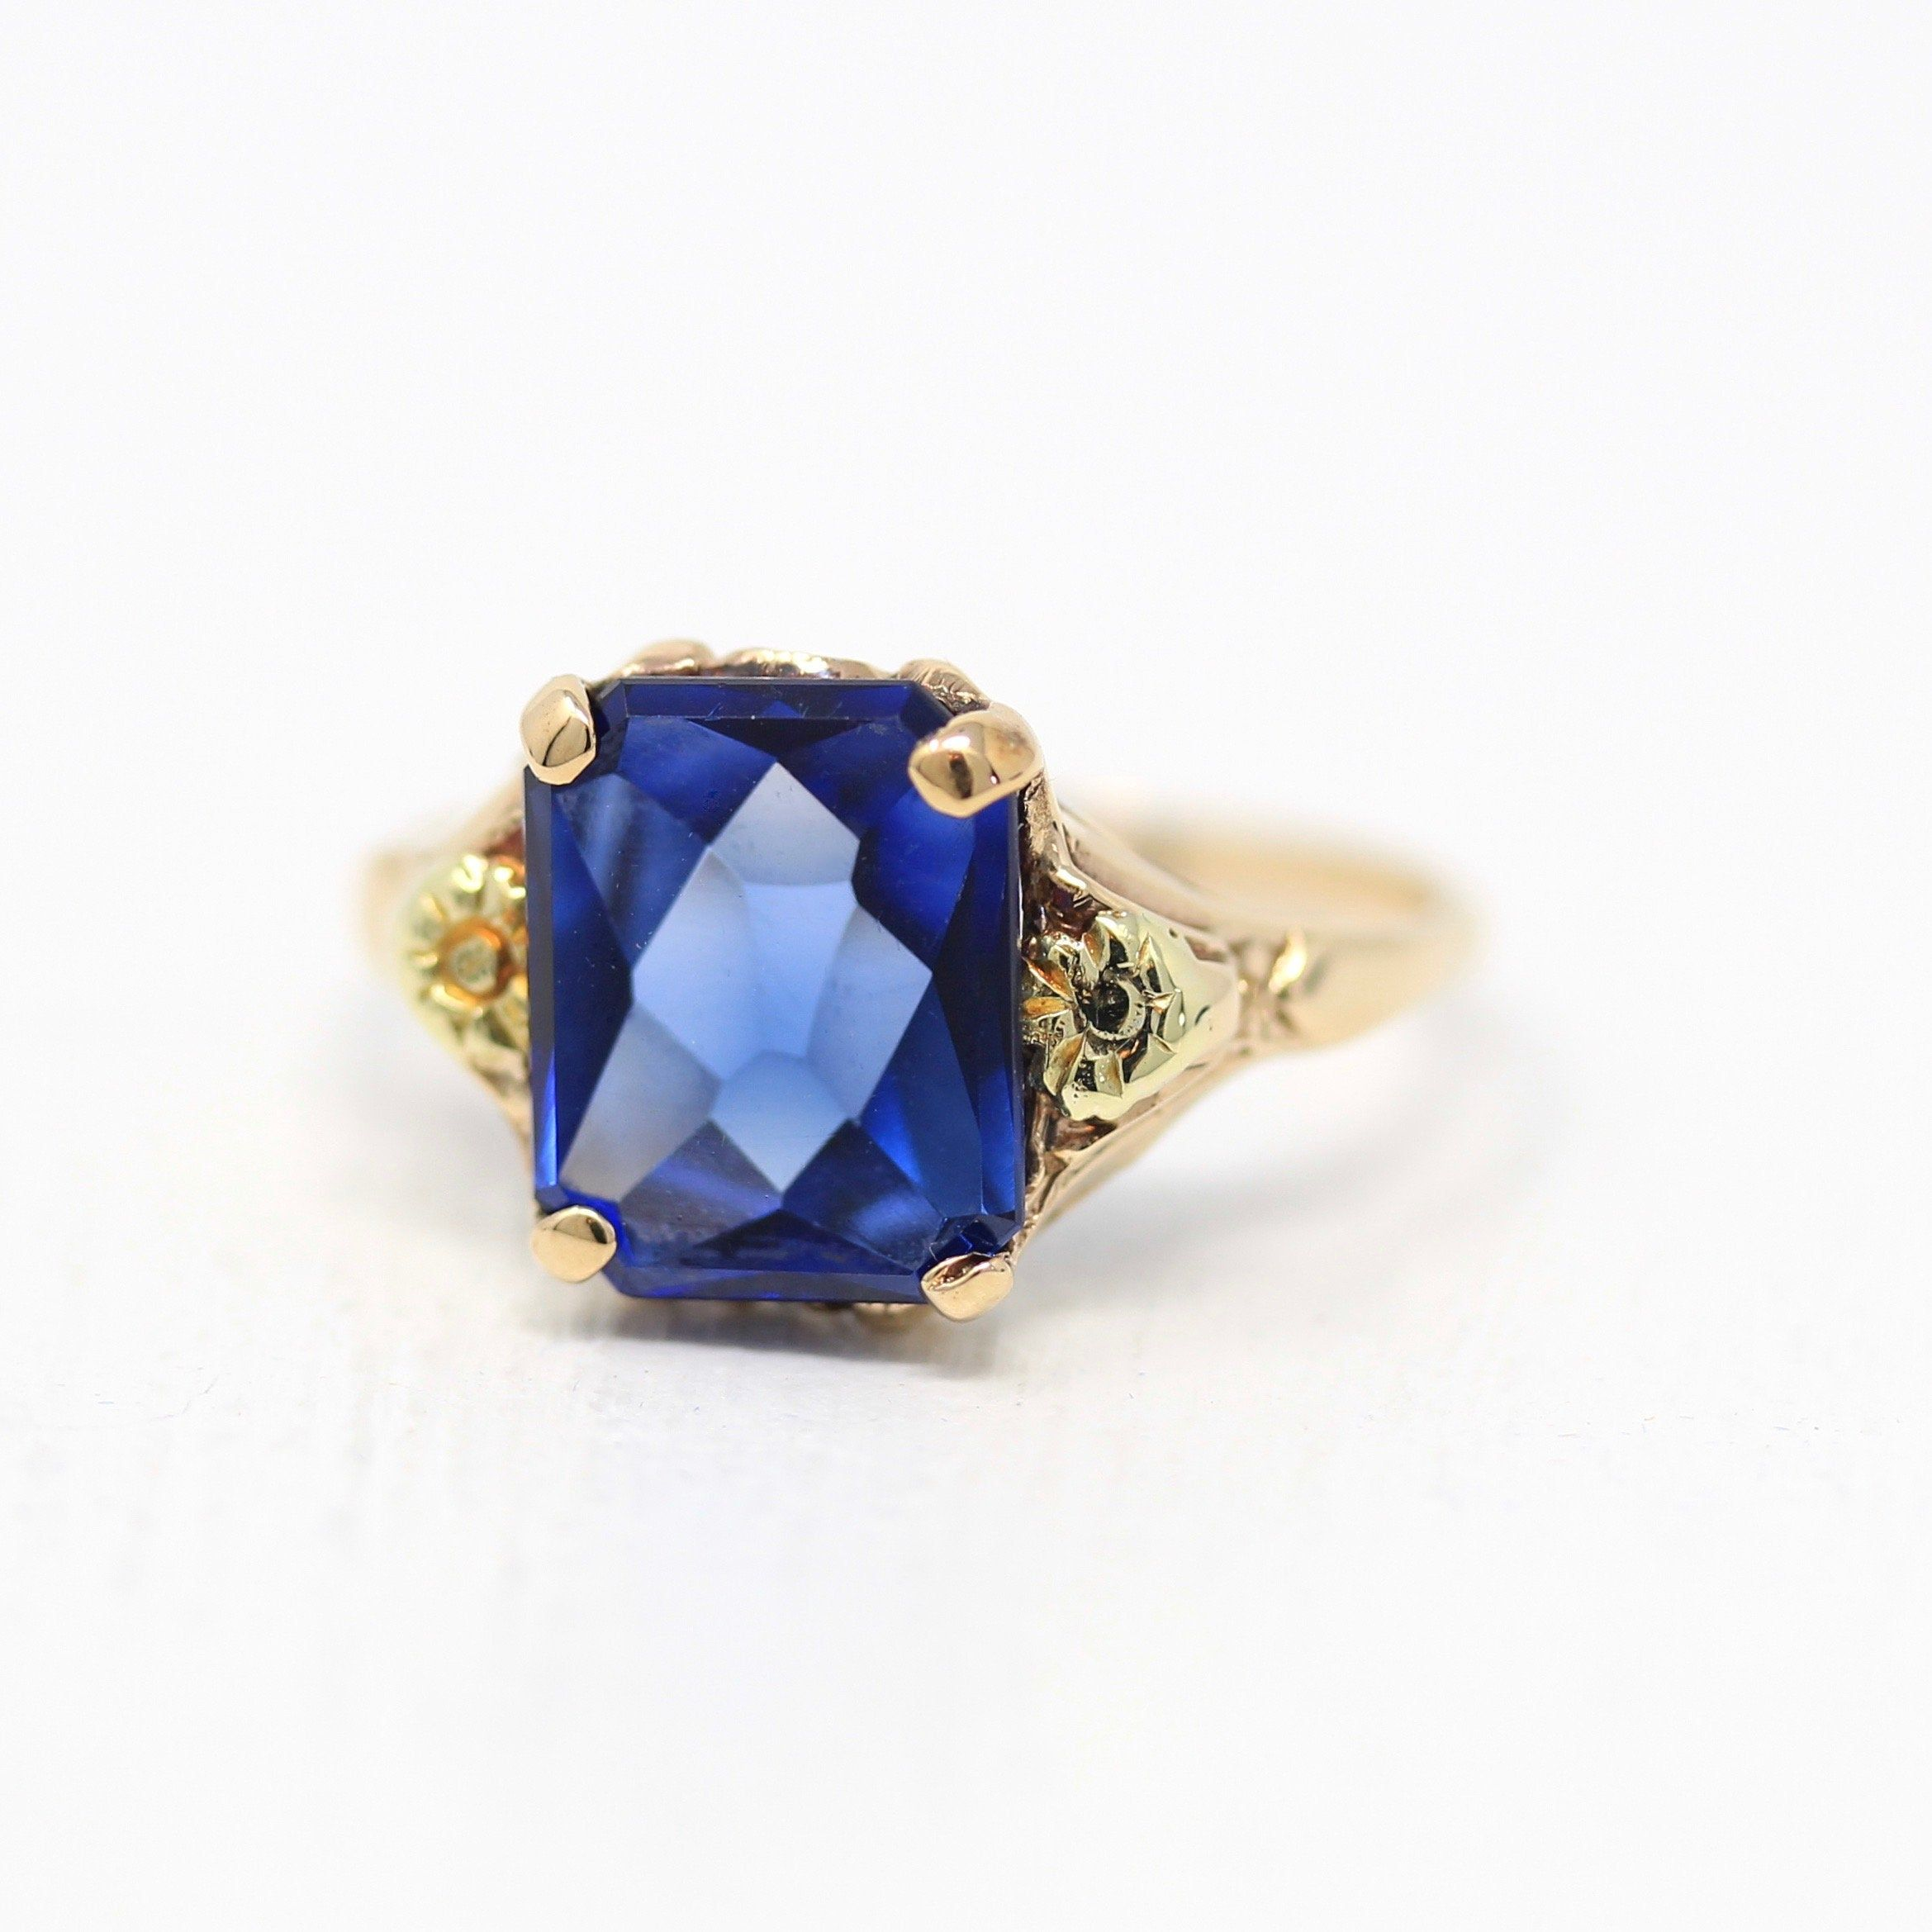 Vintage Created Sapphire Ring 10k Yellow Gold Blue September Birthstone Statement 1940s Size 6 Retro Unique Flower In 2020 Retro Jewelry Retro Ring Antique Jewelry